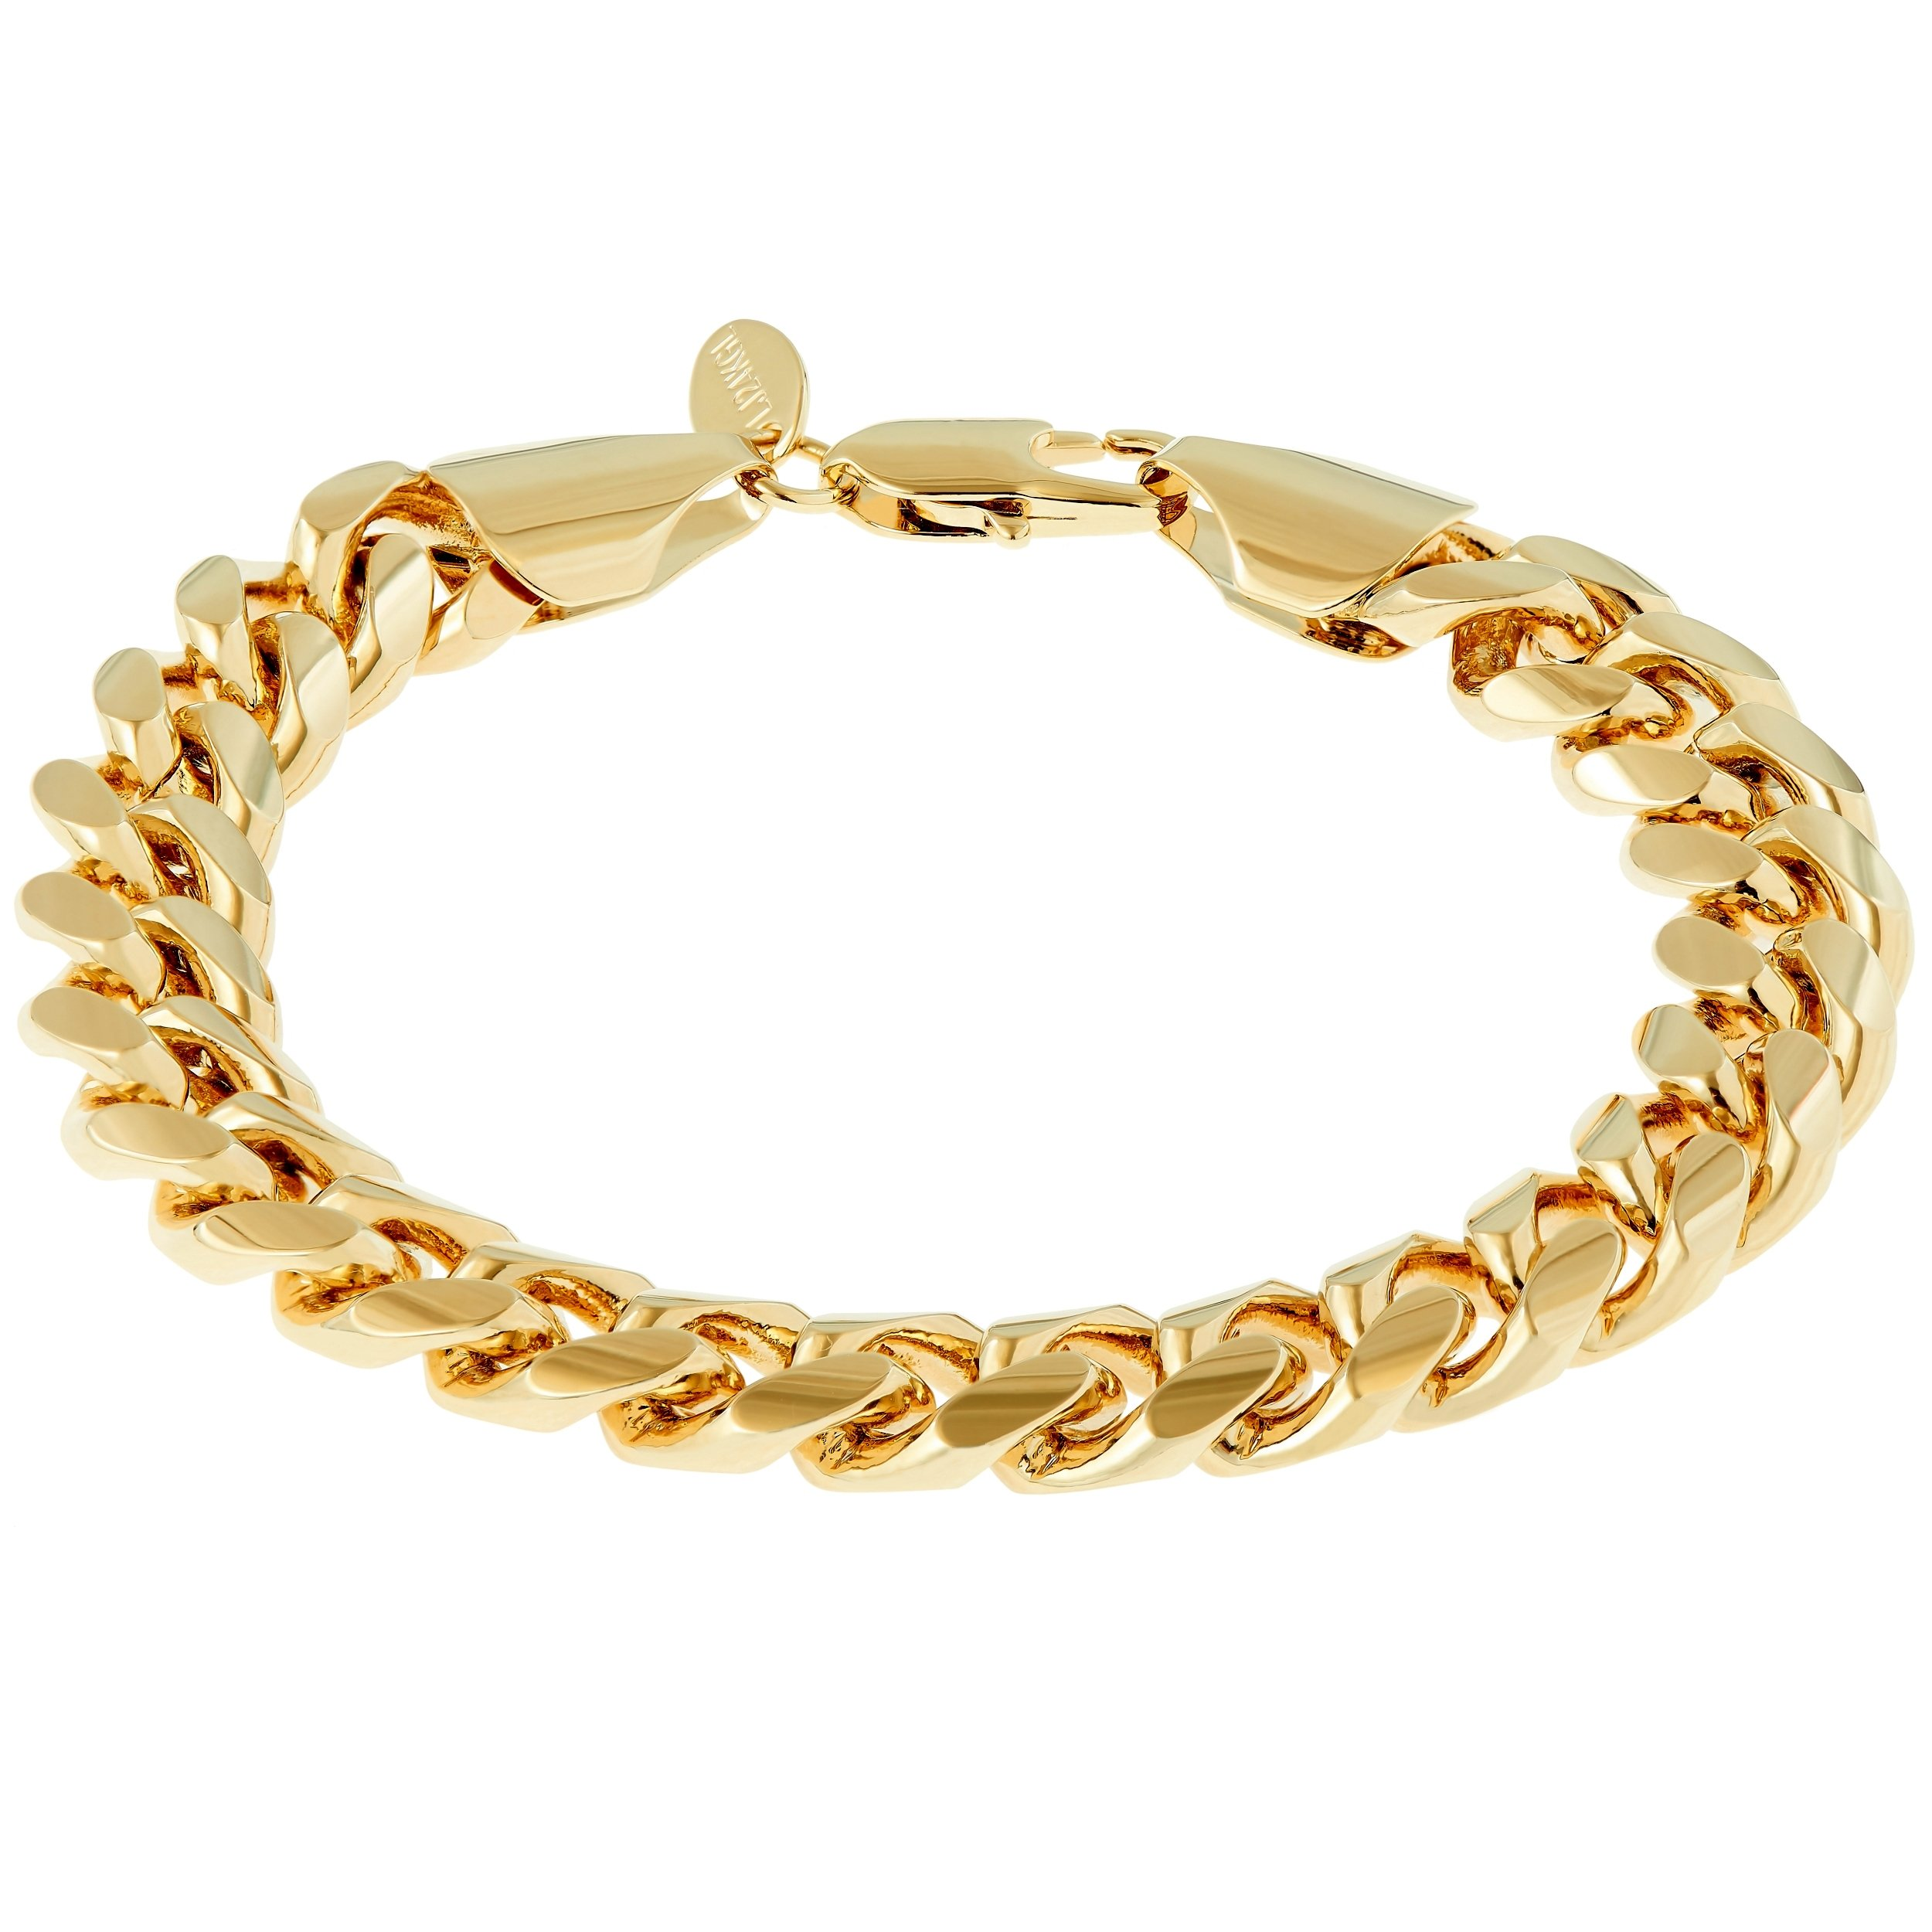 Lifetime Jewelry Cuban Link Bracelet 11MM, Round, 24K Gold Overlay Premium Fashion Jewelry, Guaranteed Life, 8 inches by Lifetime Jewelry (Image #9)